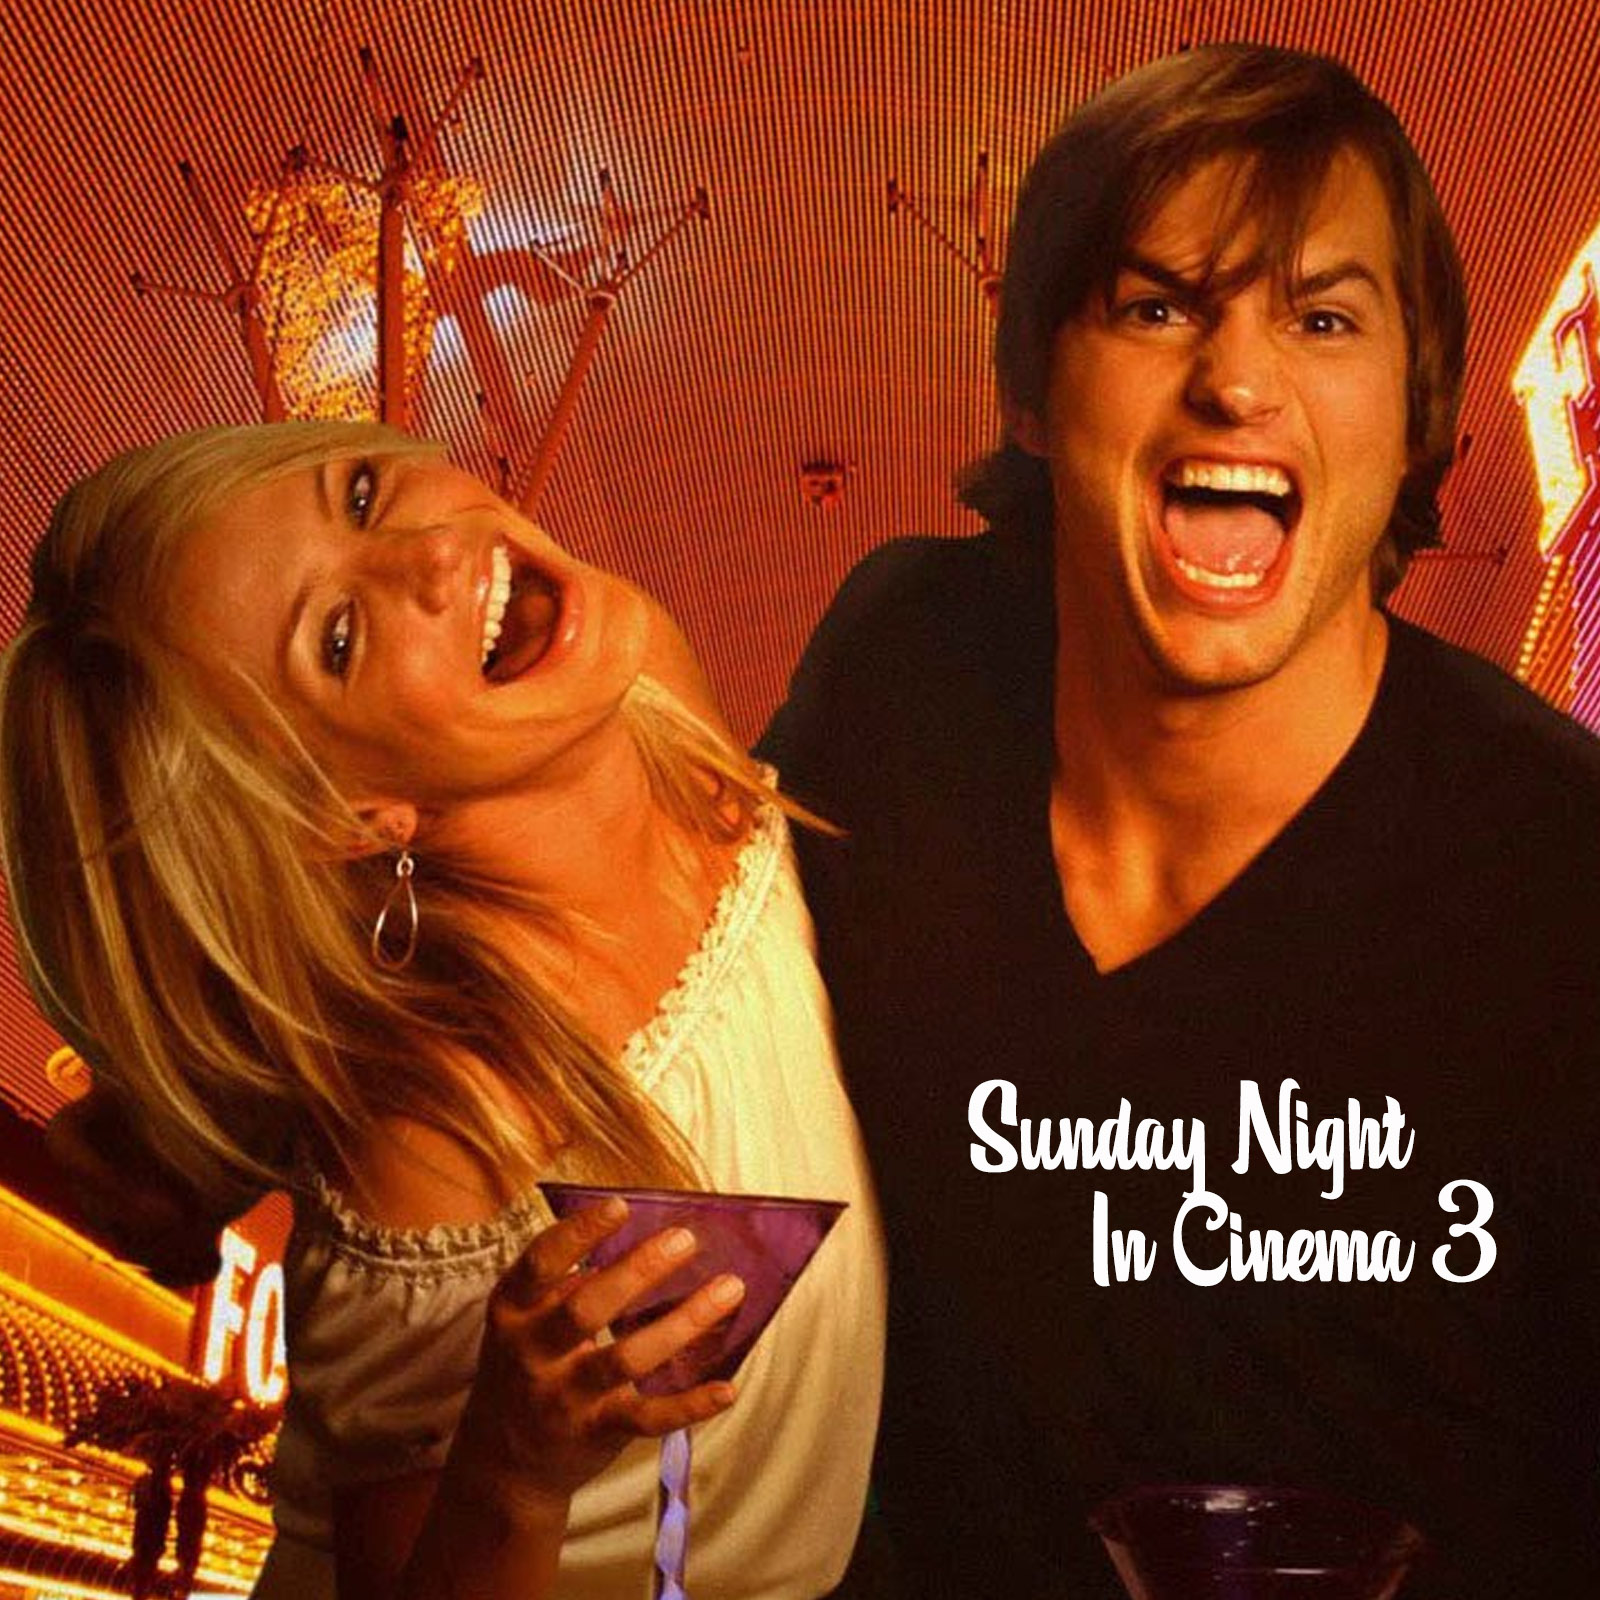 Sunday Night in Cinema 3 Episode 6